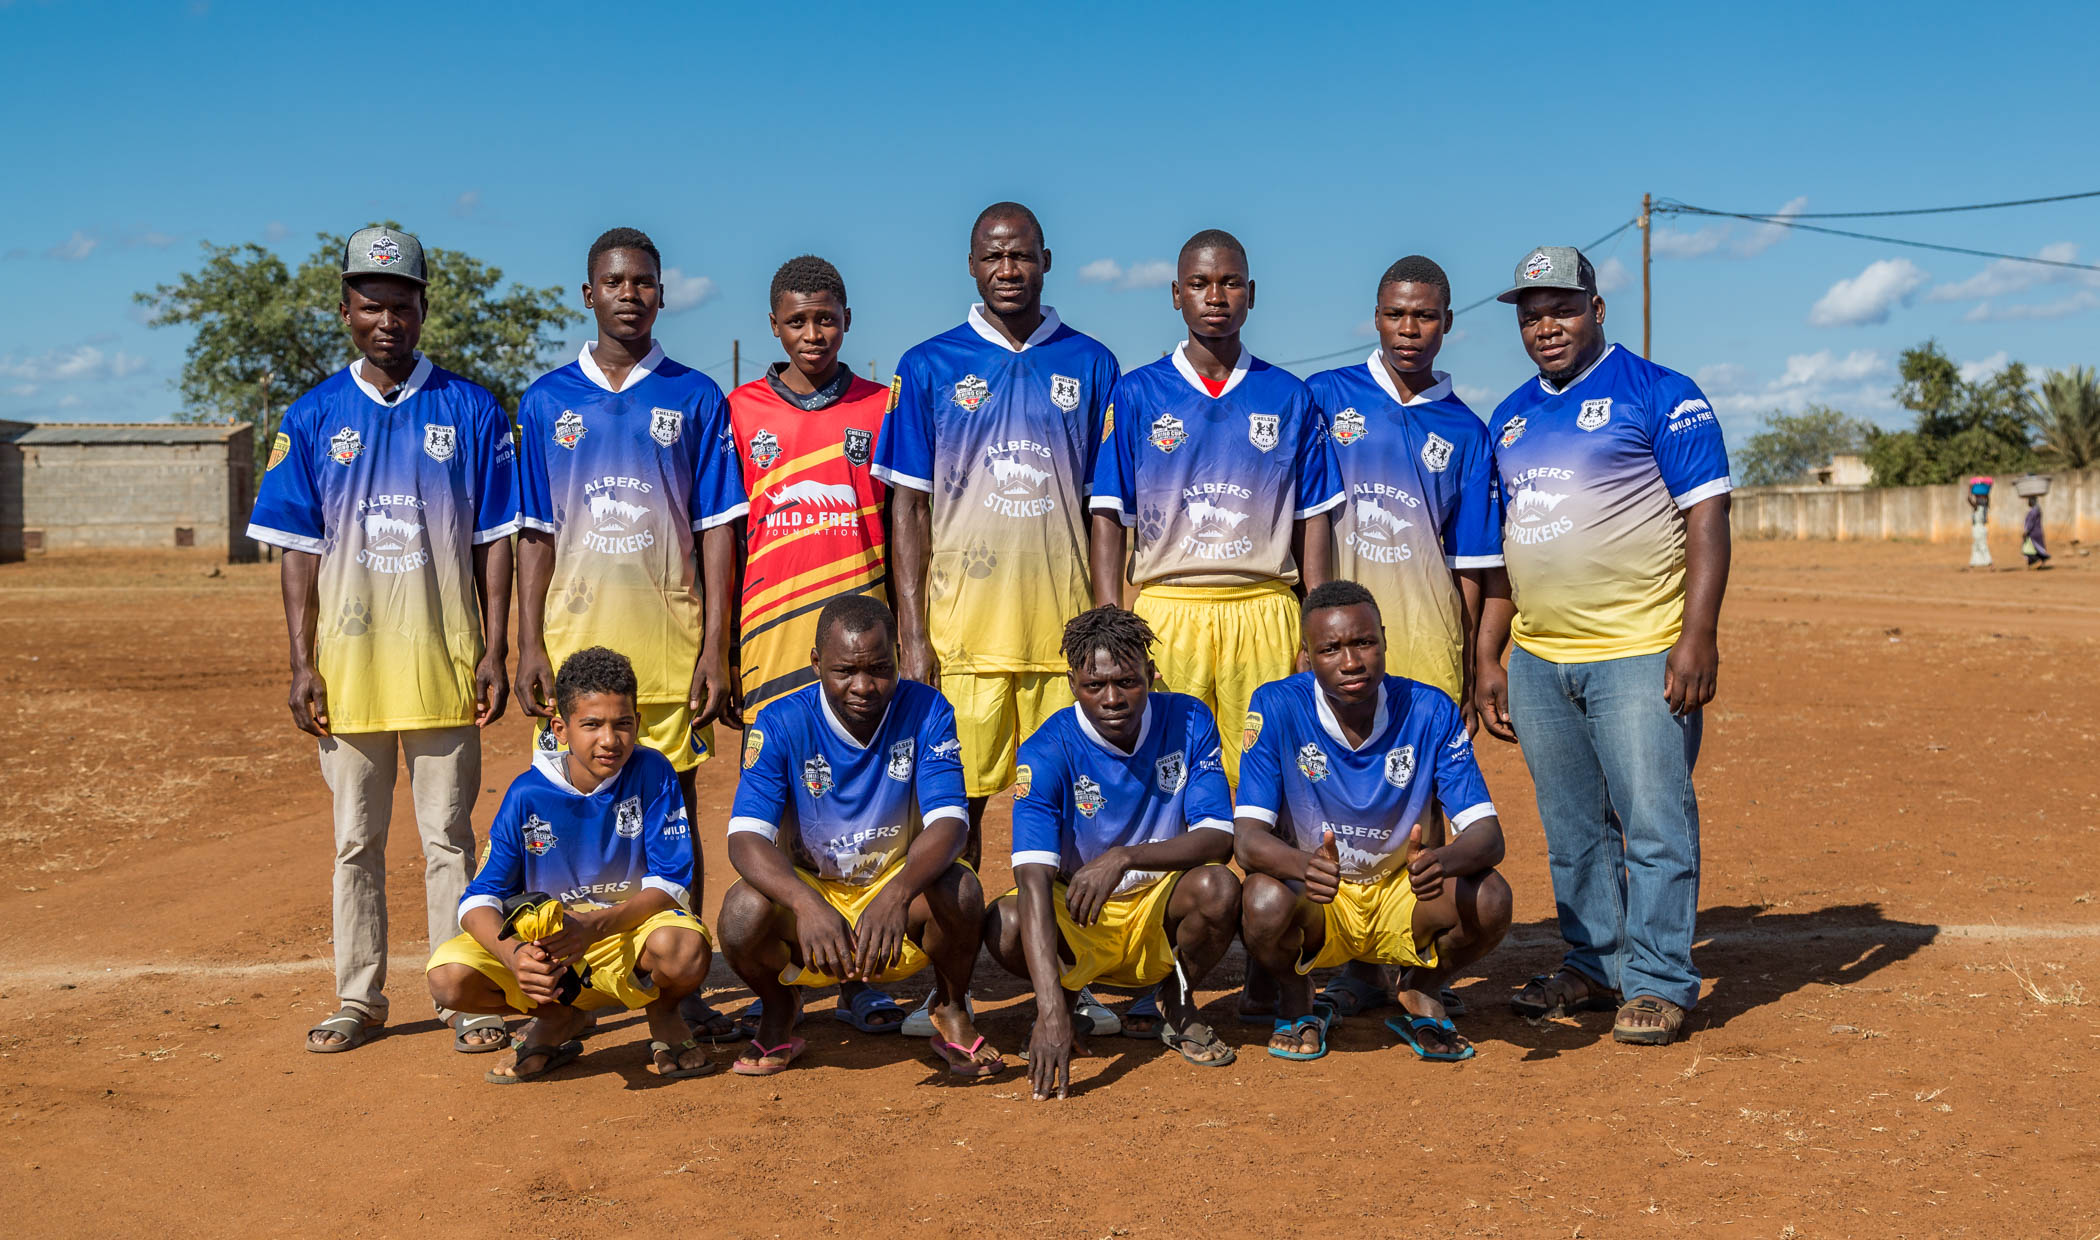 Chelsea FC Lions Team Photo, Rhino Cup Champions League, May 2019